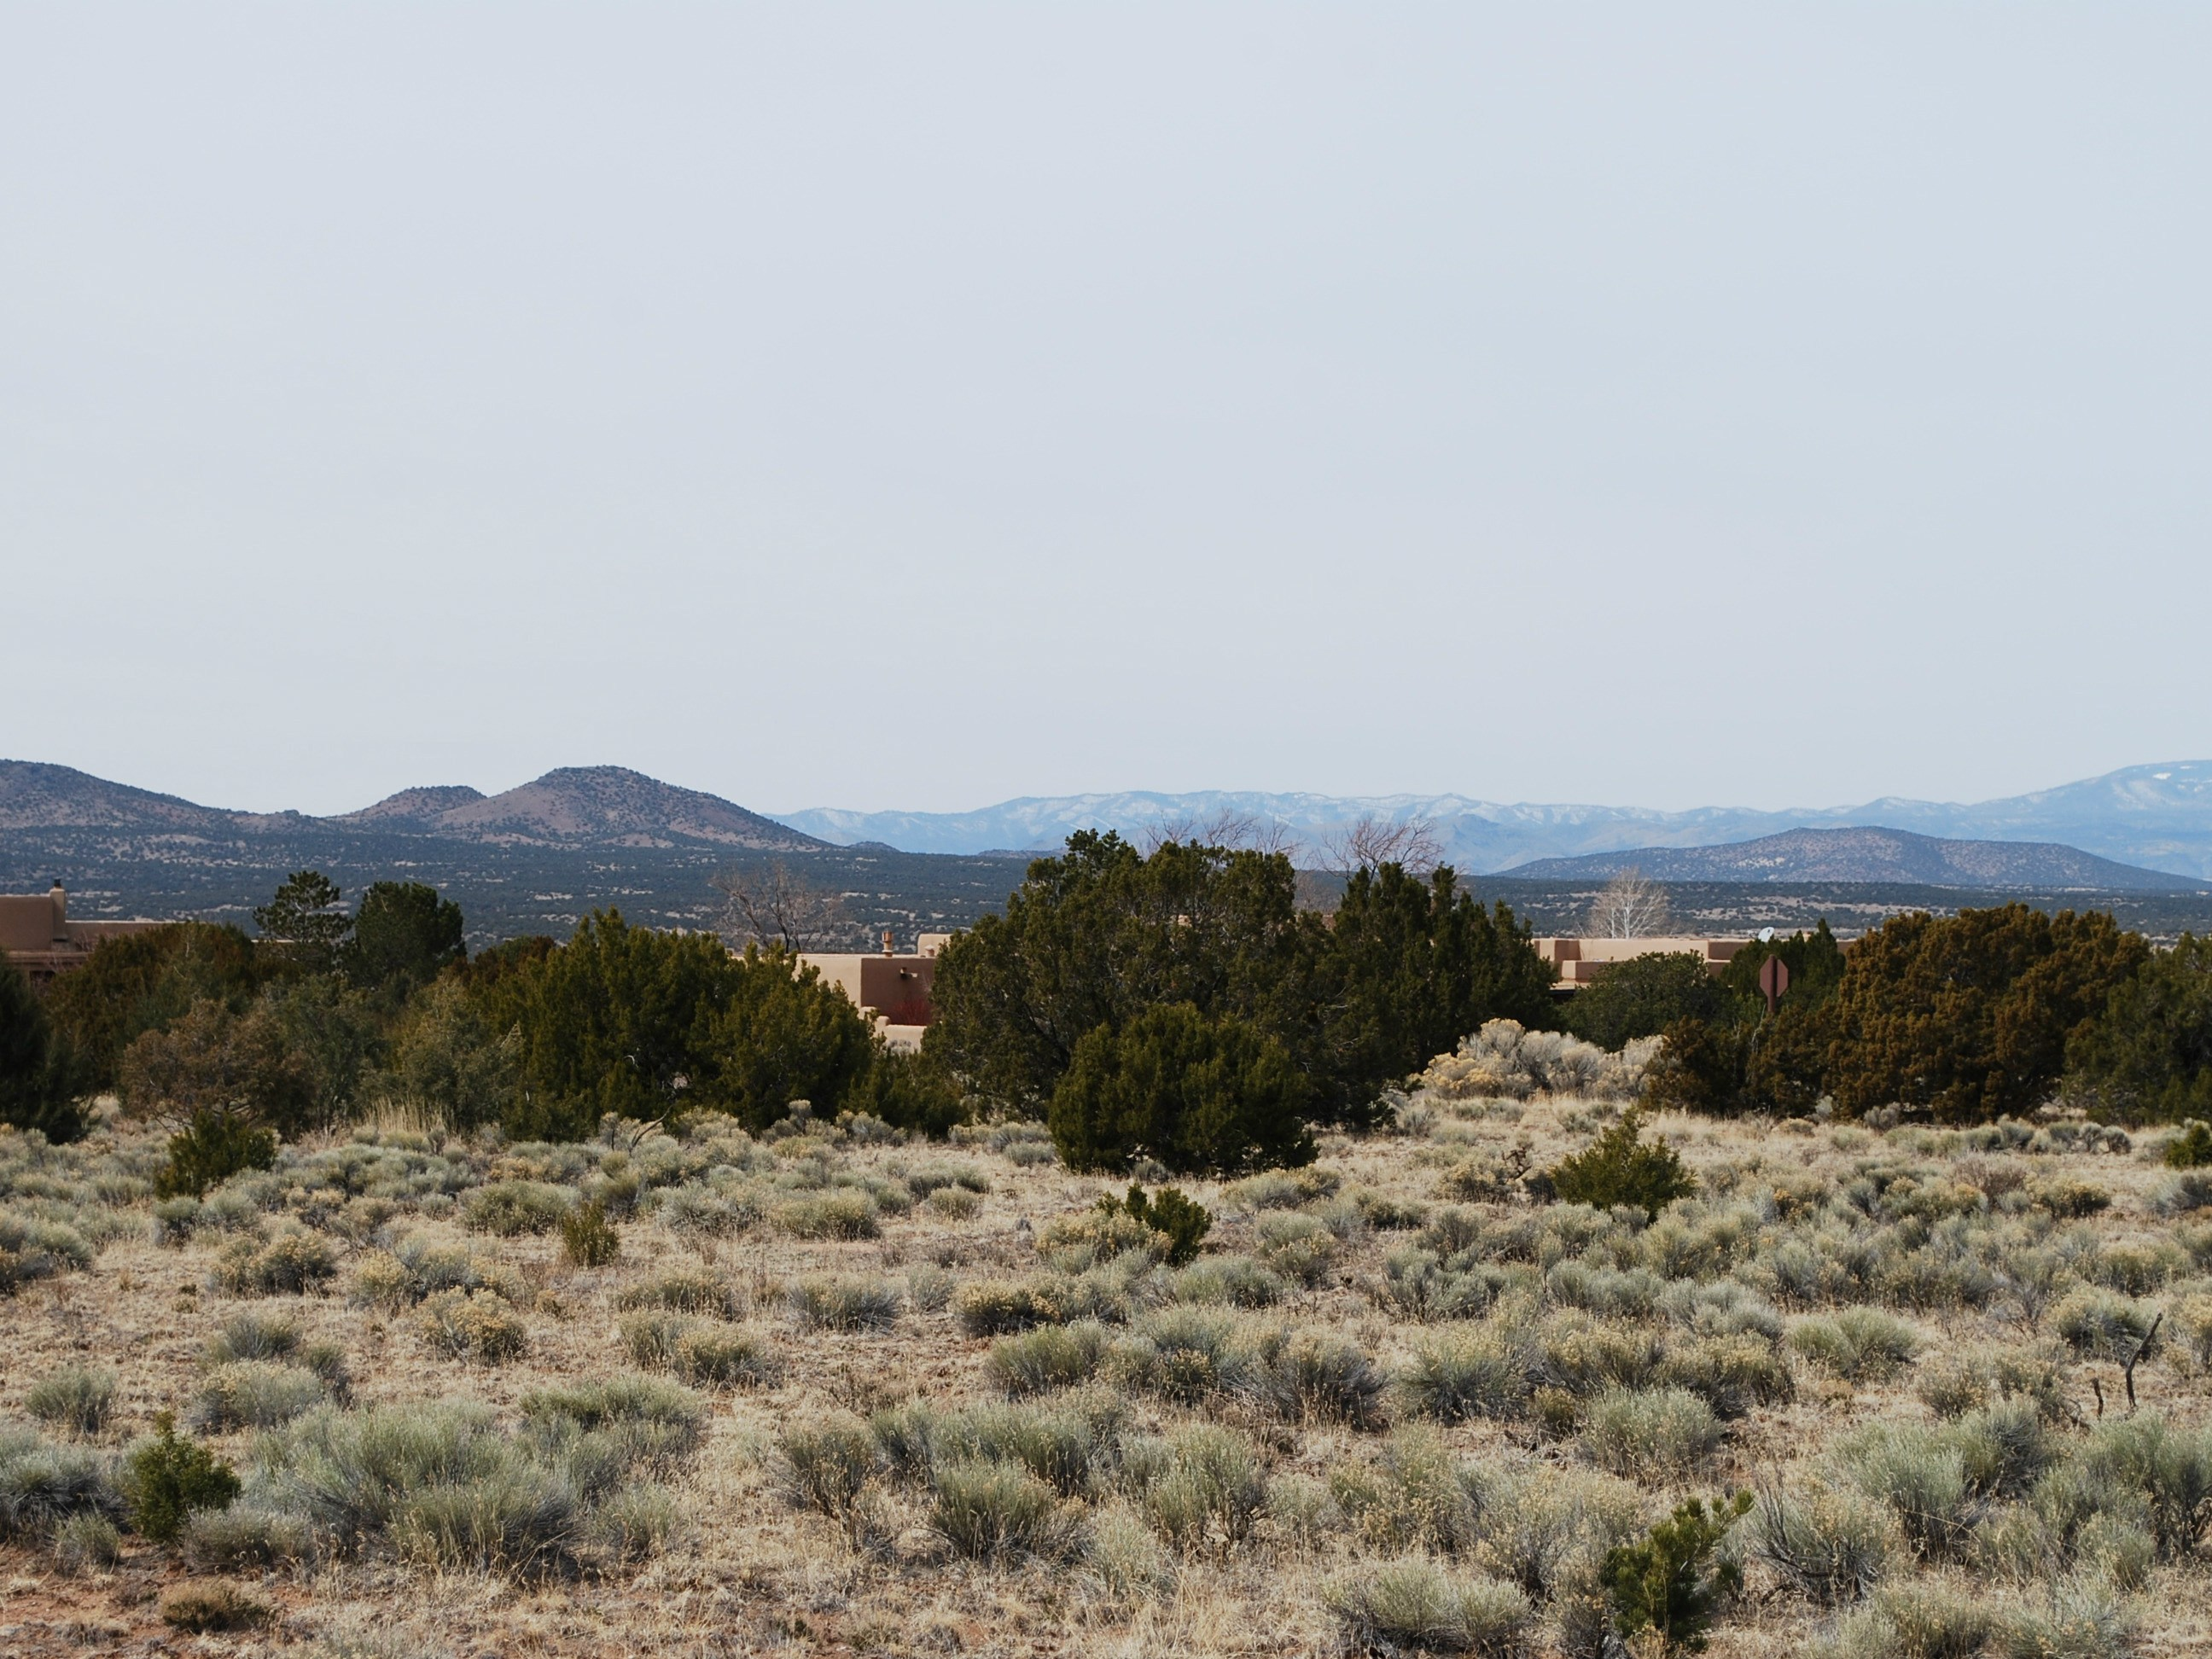 Land for Sale at 110 Calle Ventoso West Lot 888 Santa Fe, New Mexico, 87506 United States